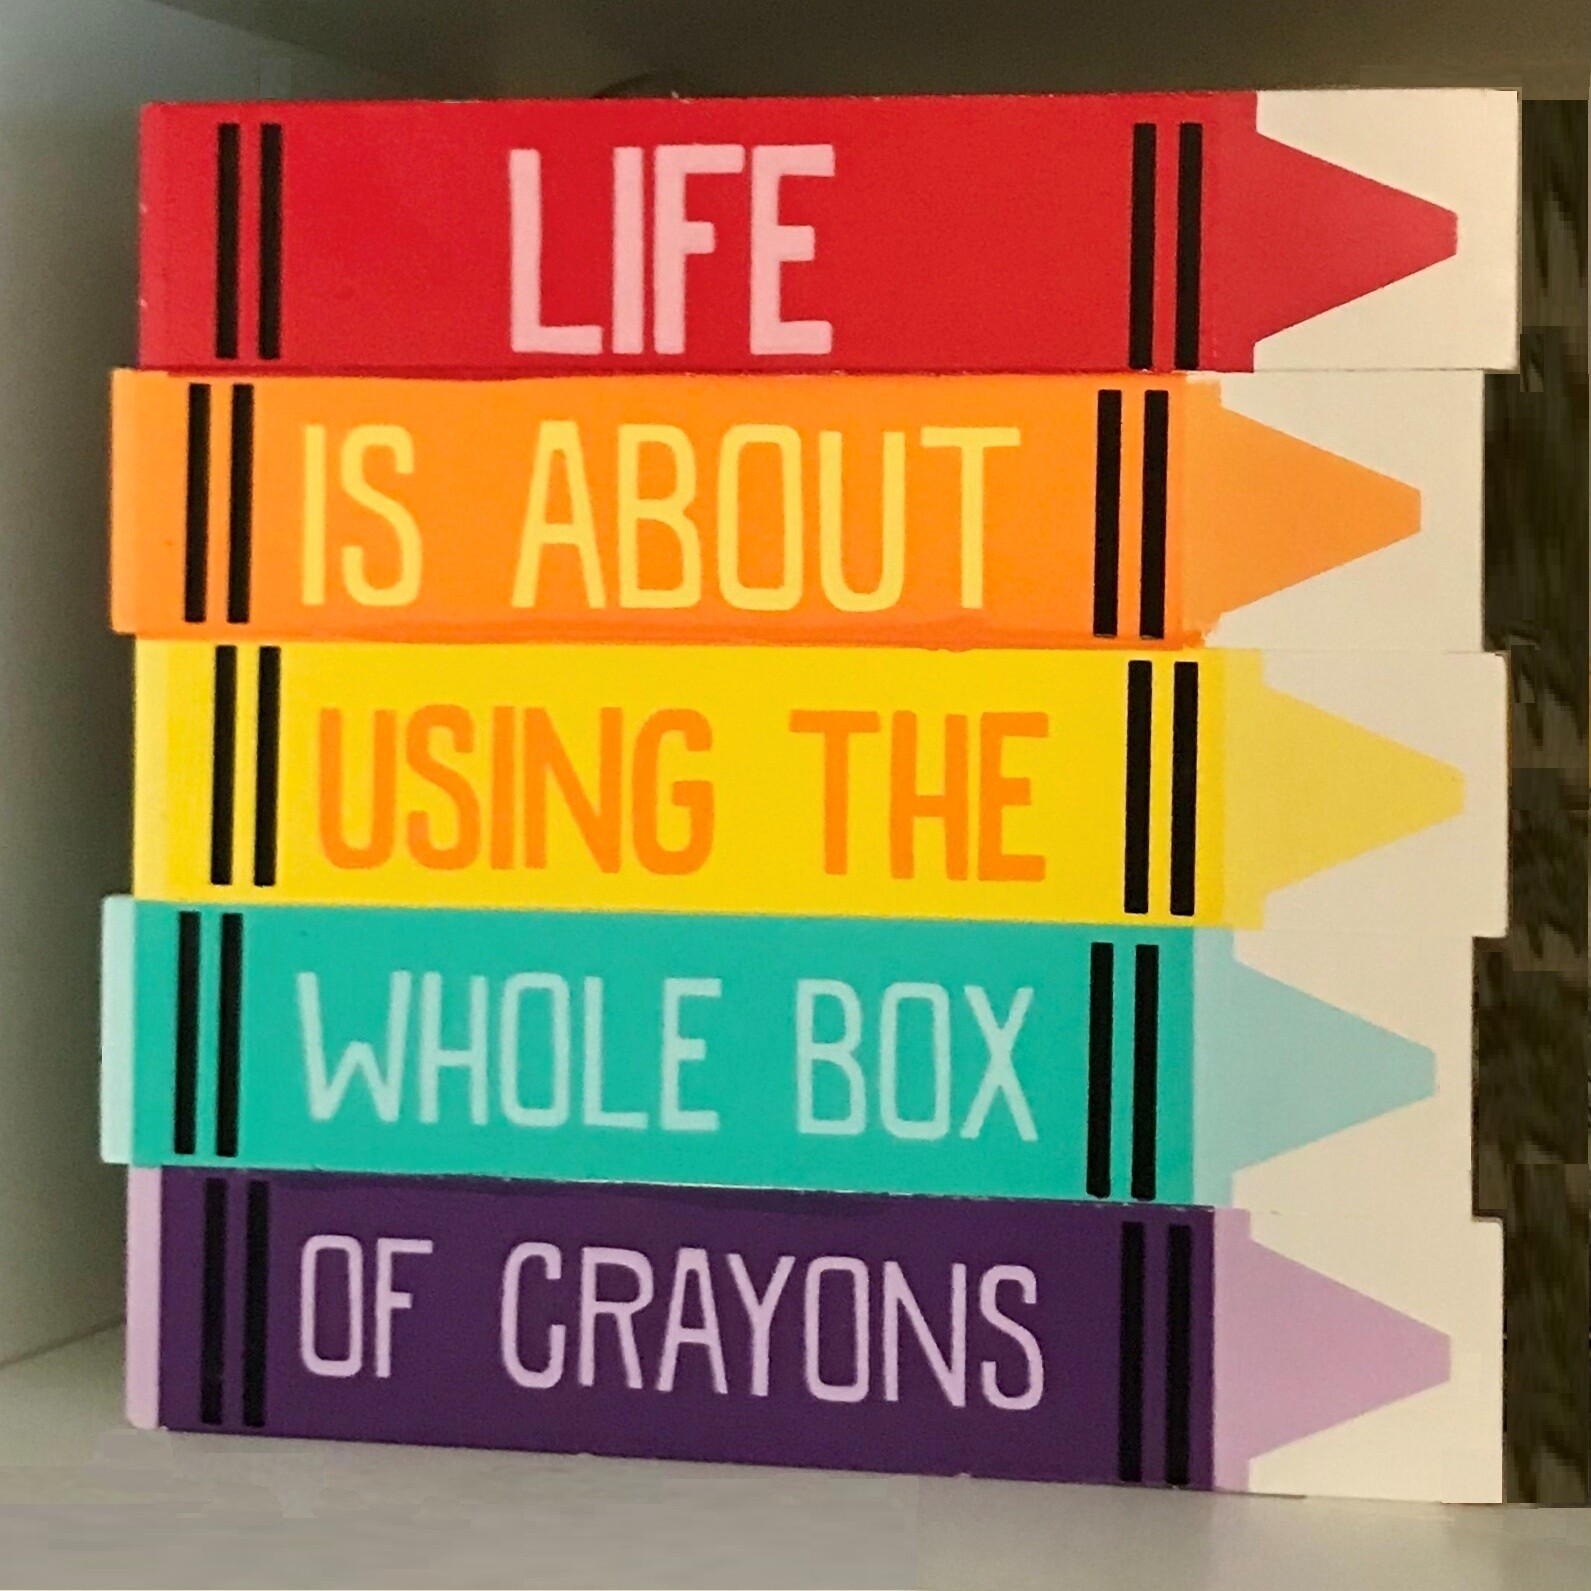 Are you using all your crayons? Every day?